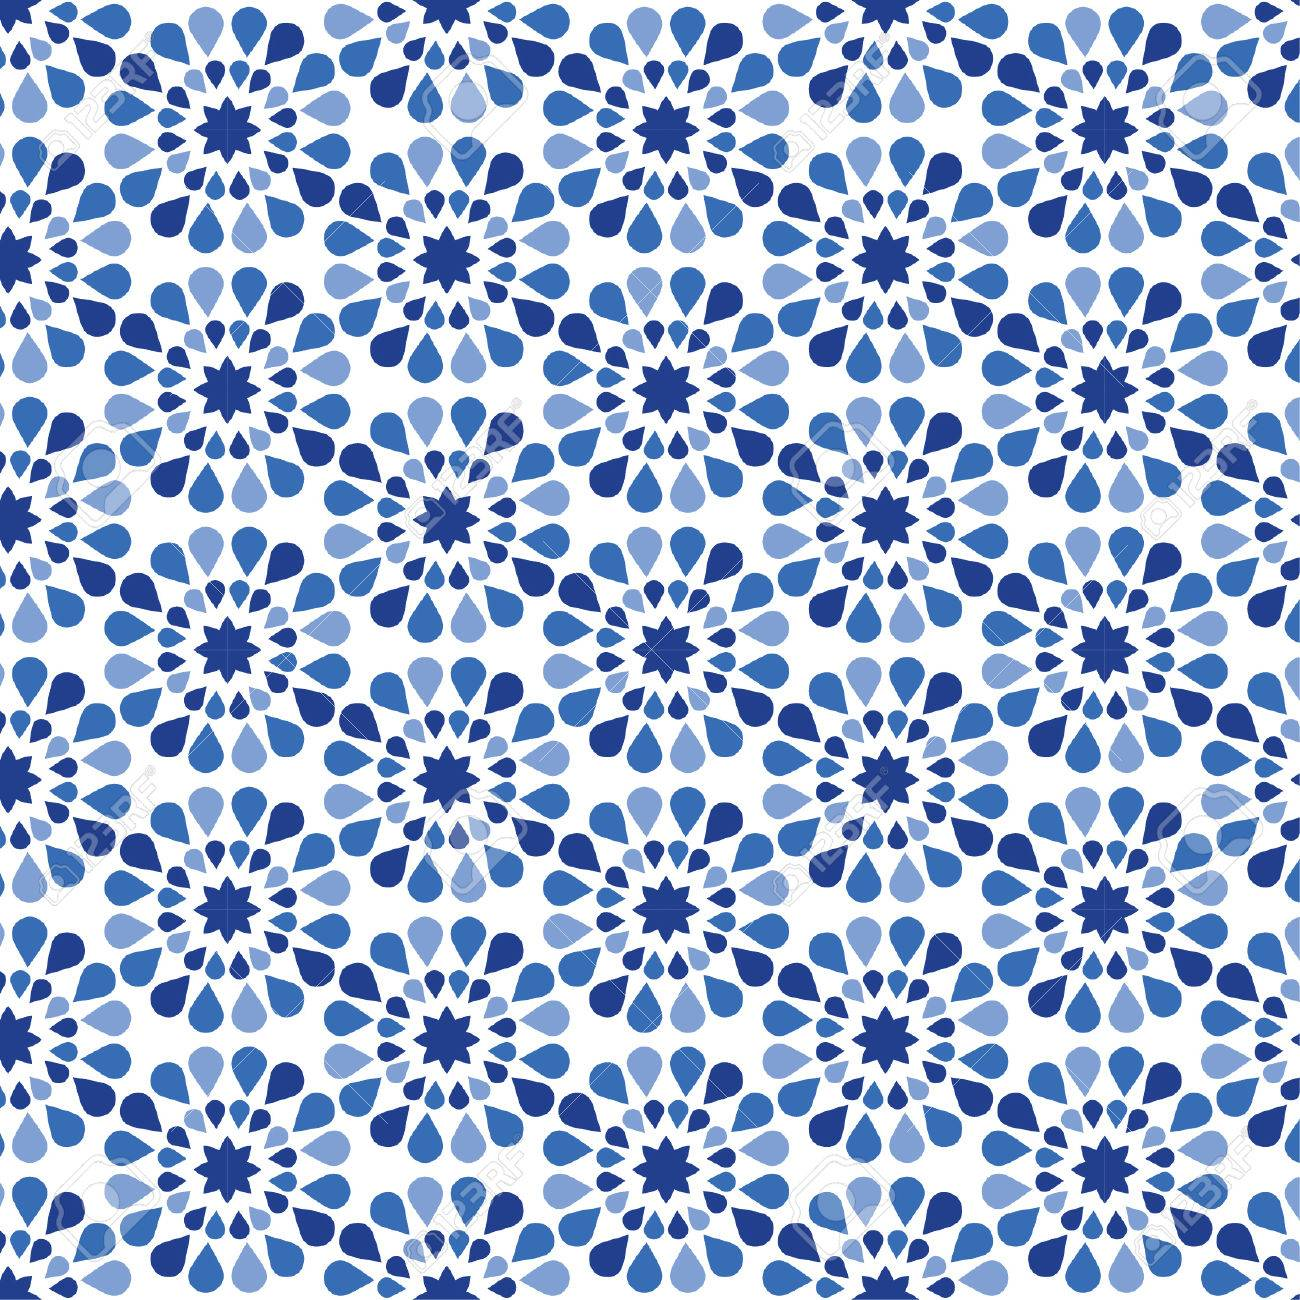 Blue Flower Pattern - Modern floral texture - Stylish abstract background - 45557568